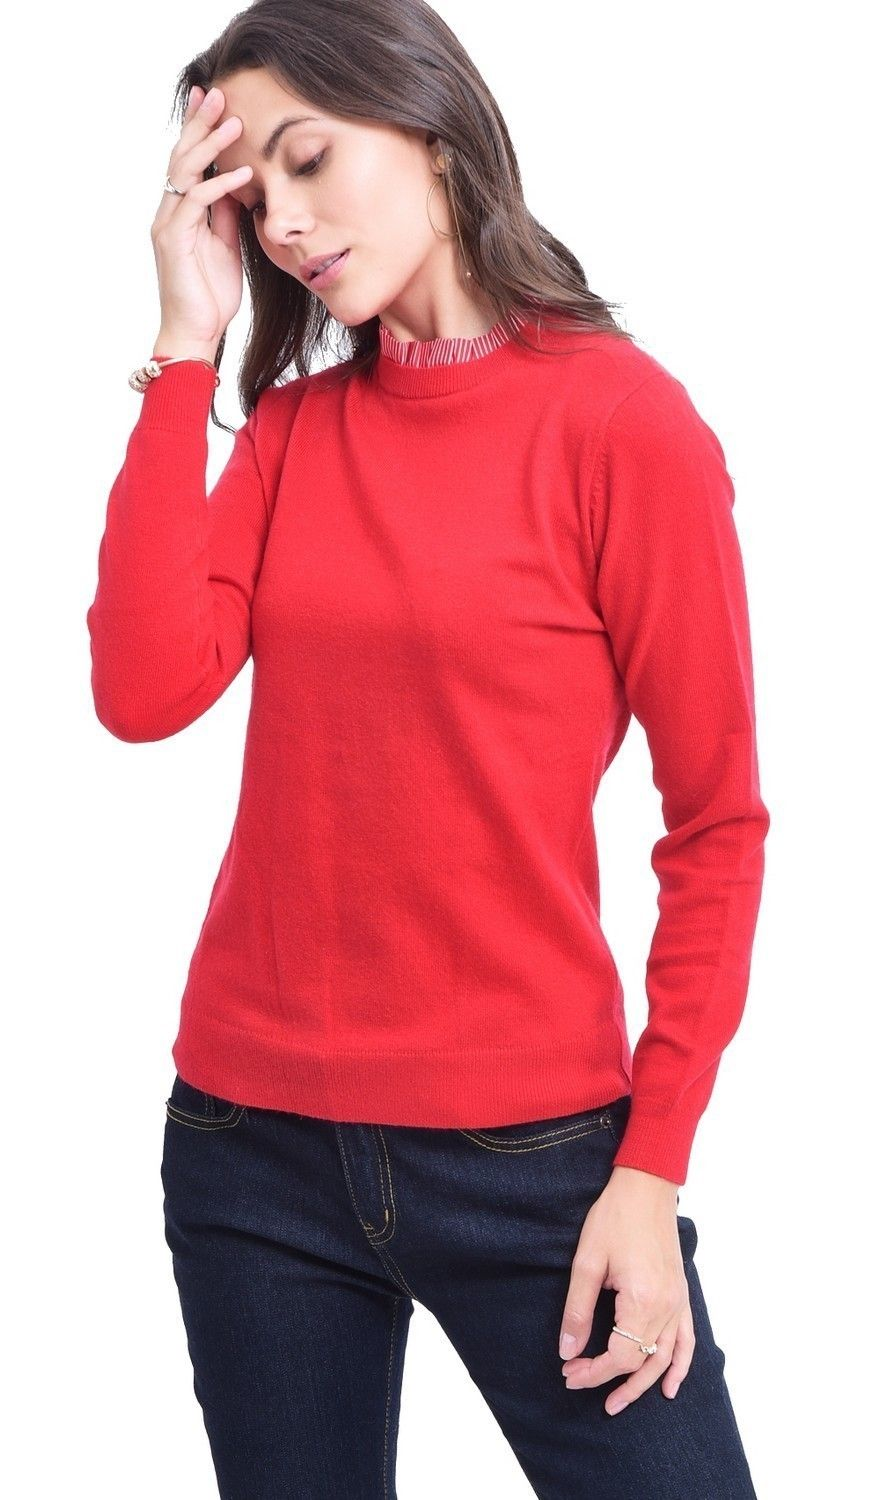 C&JO High Neck Striped Collar Sweater in Red